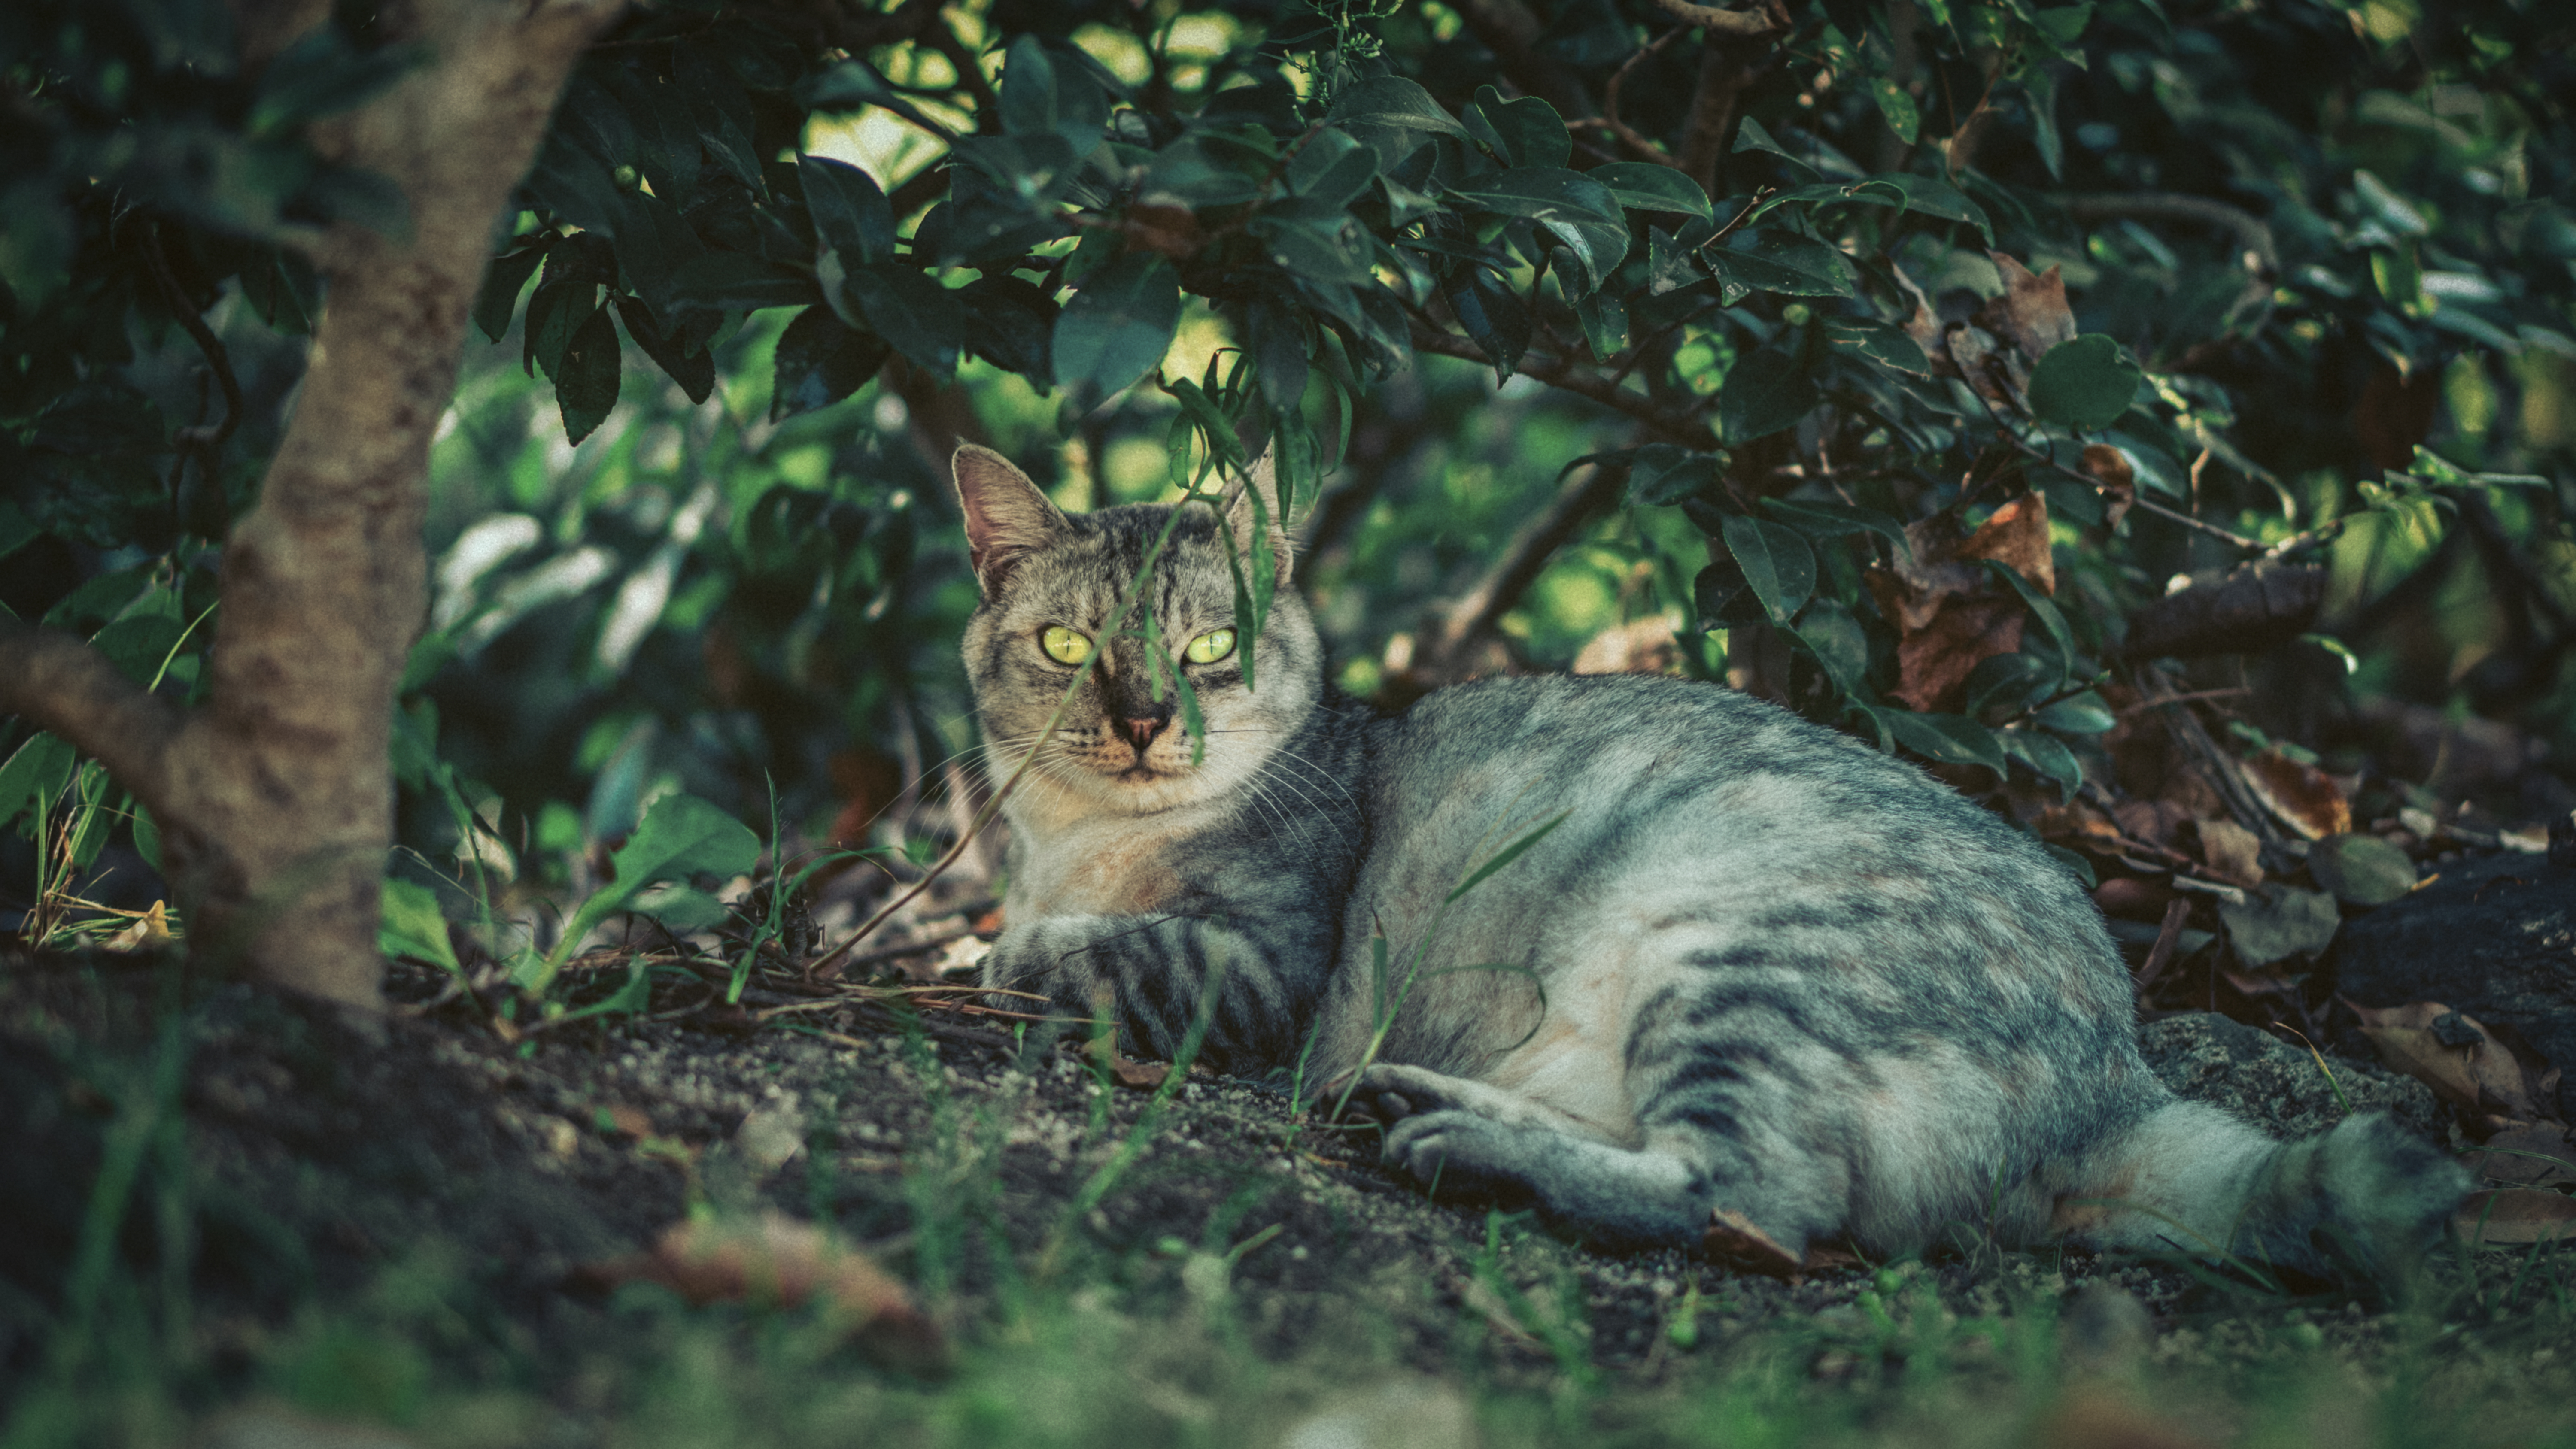 Close-Up Photo of Cat Lying On Dirt